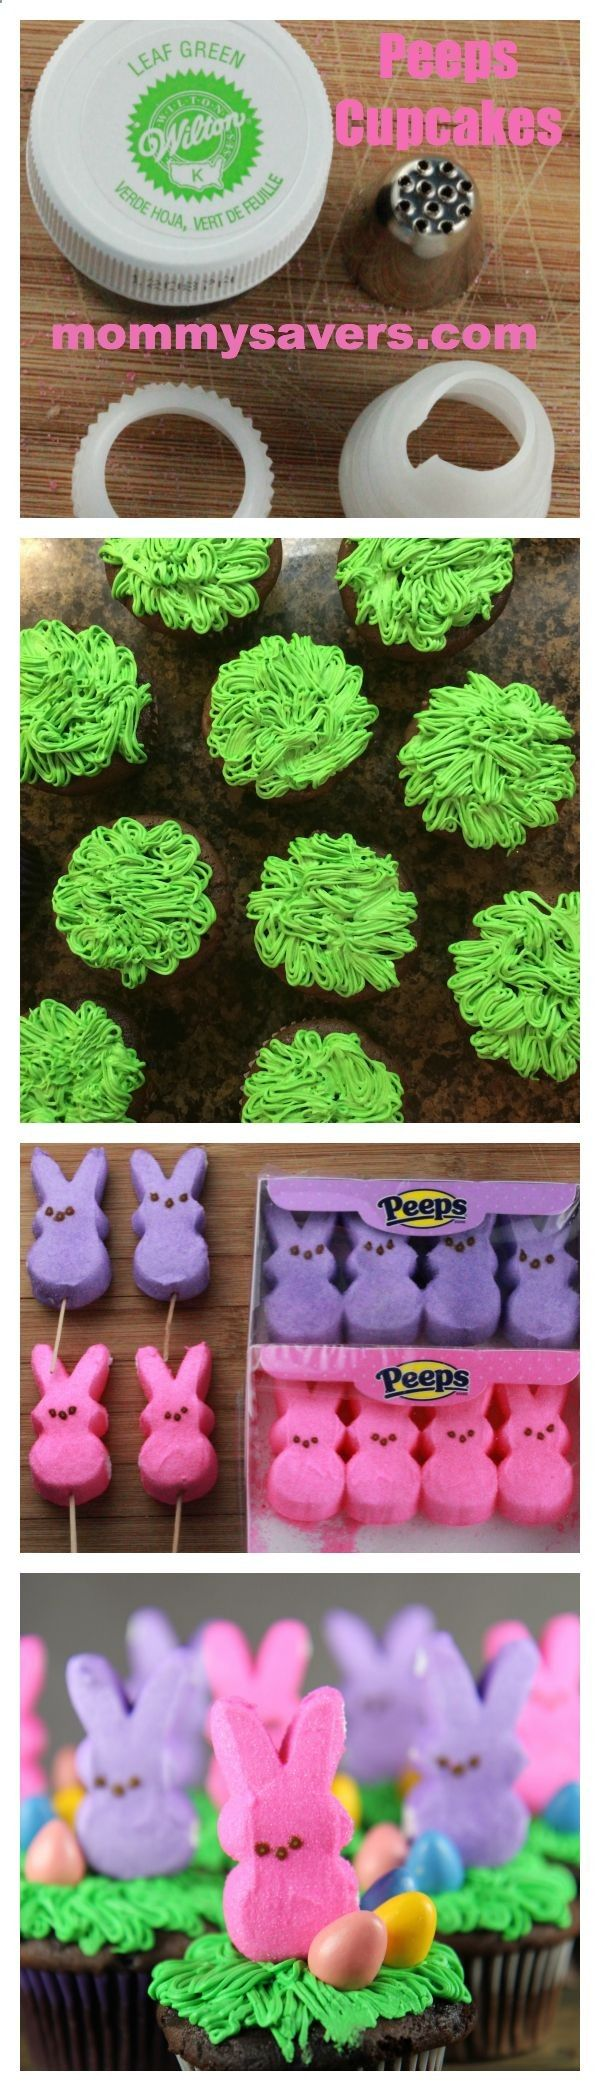 Easter Peeps Cupcakes How to get the bunnies to stand up without falling over